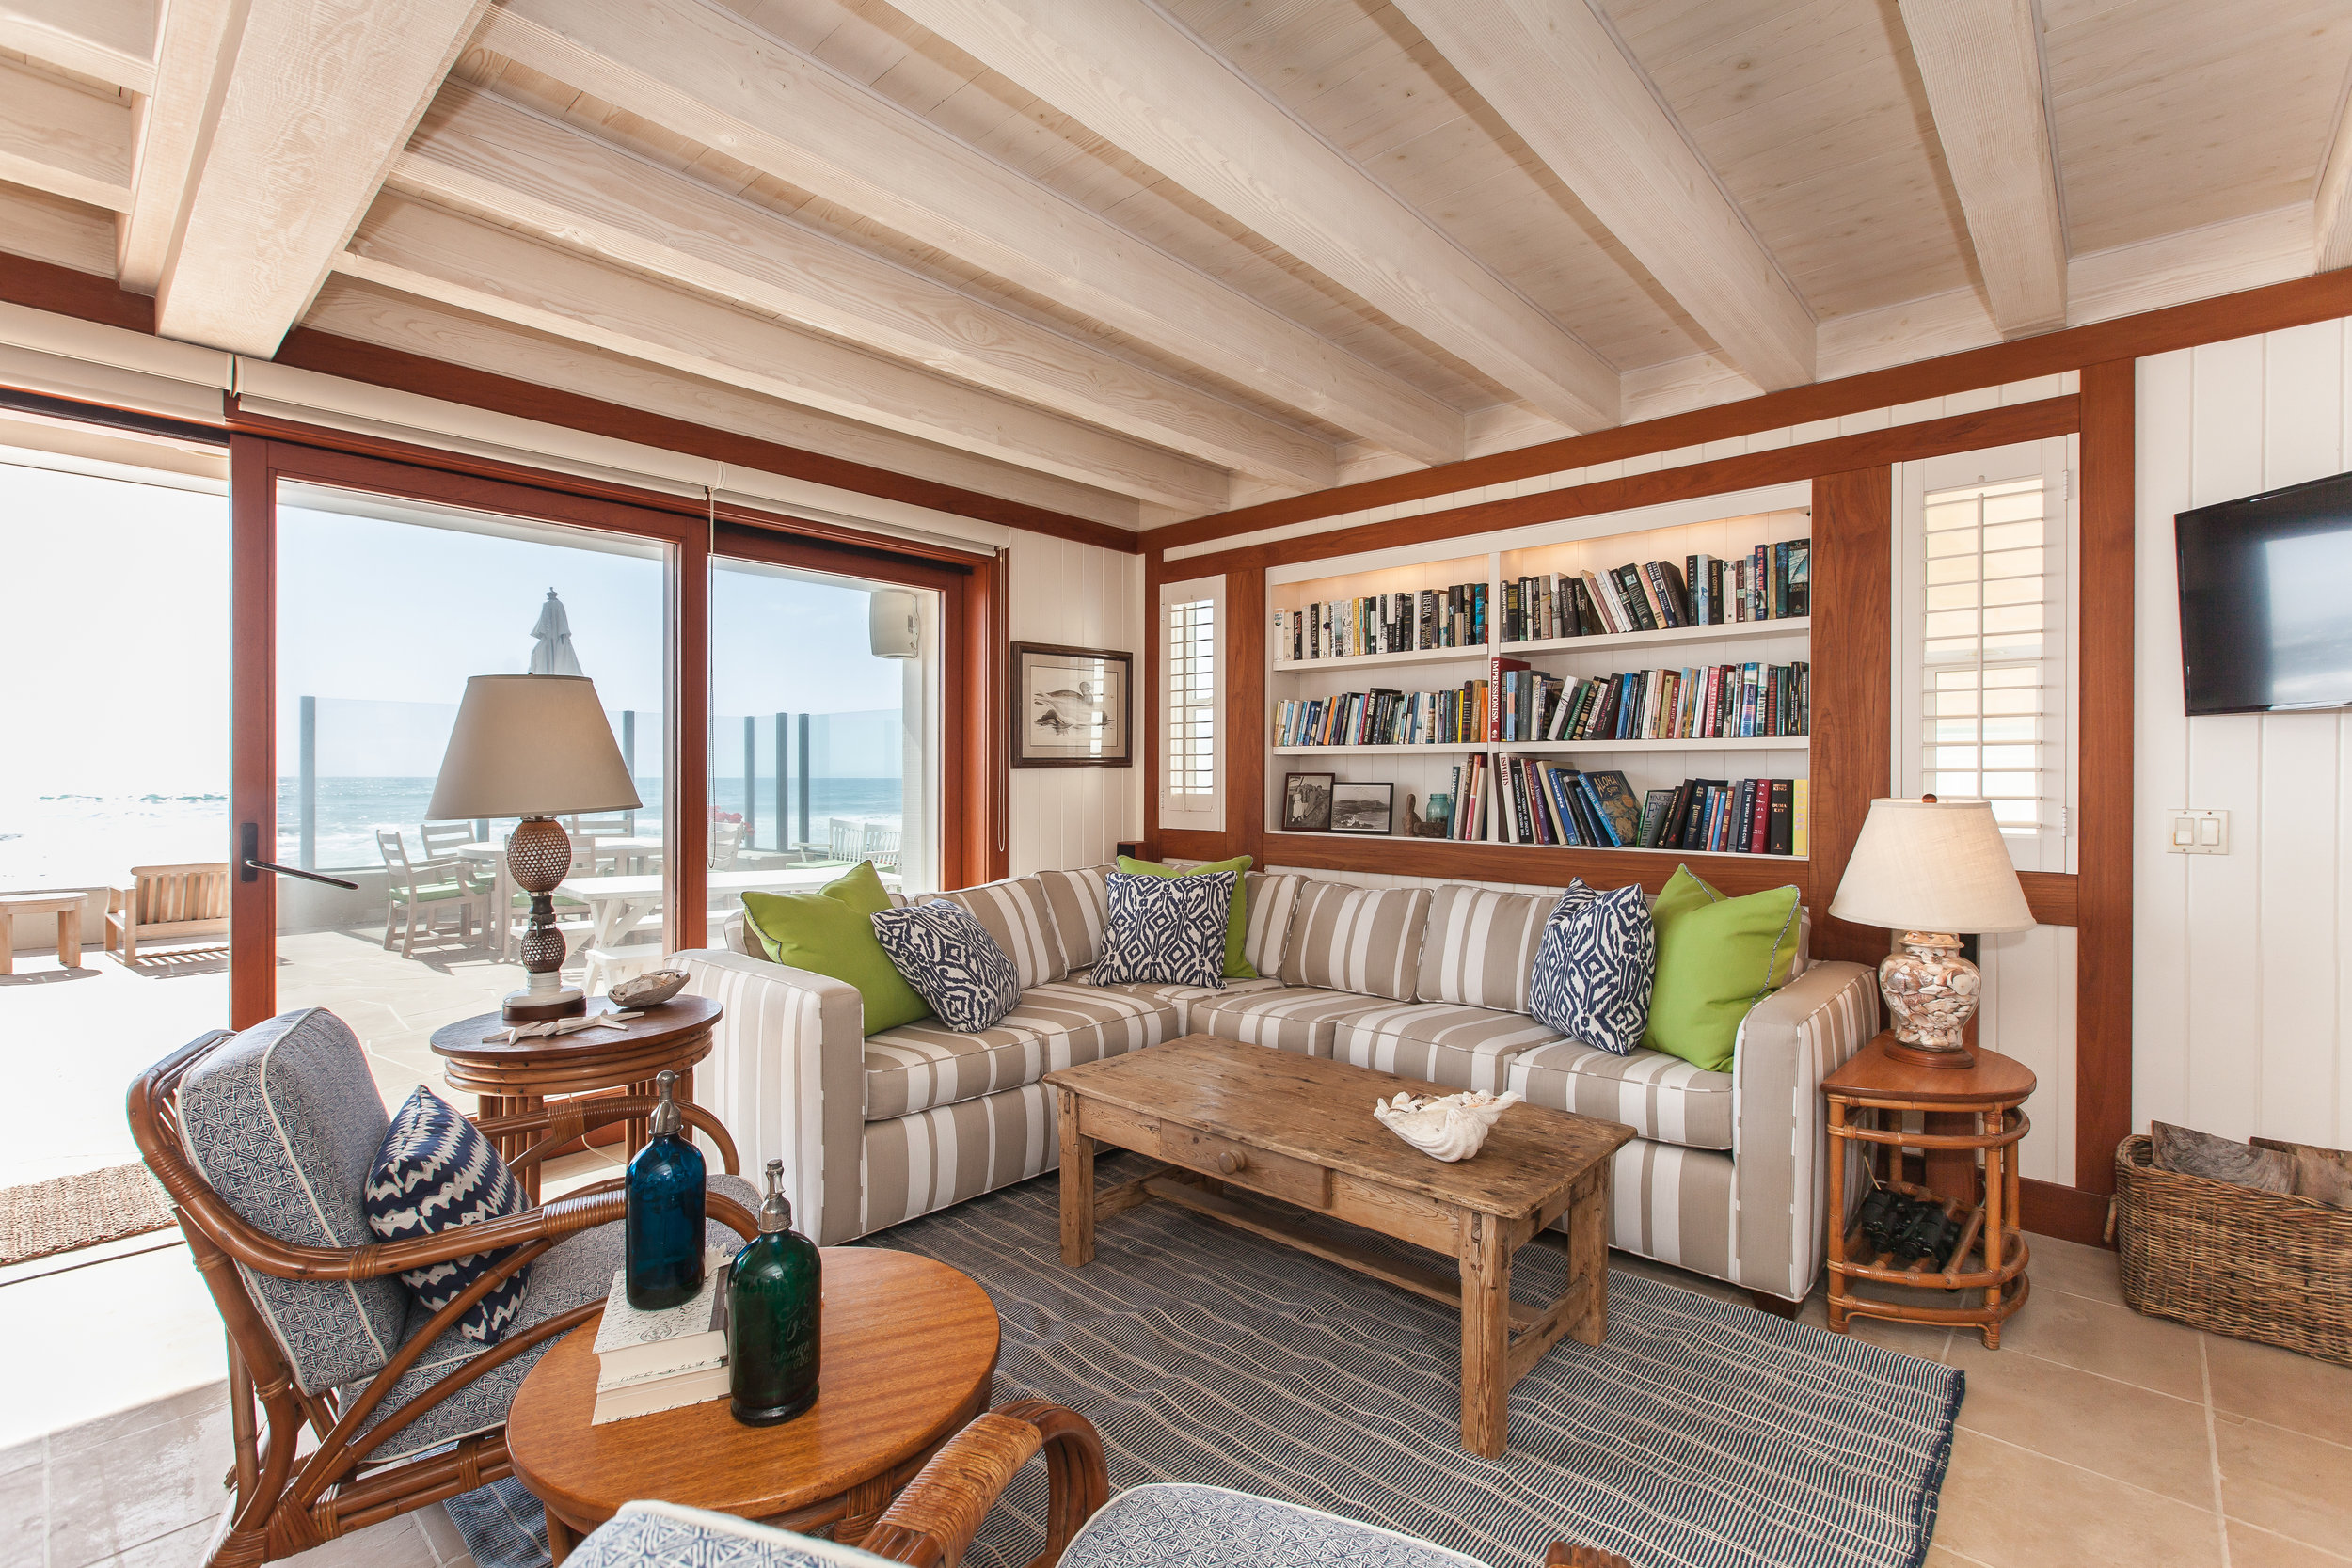 Interior Design    OCEAN FRONT COTTAGE   View Project